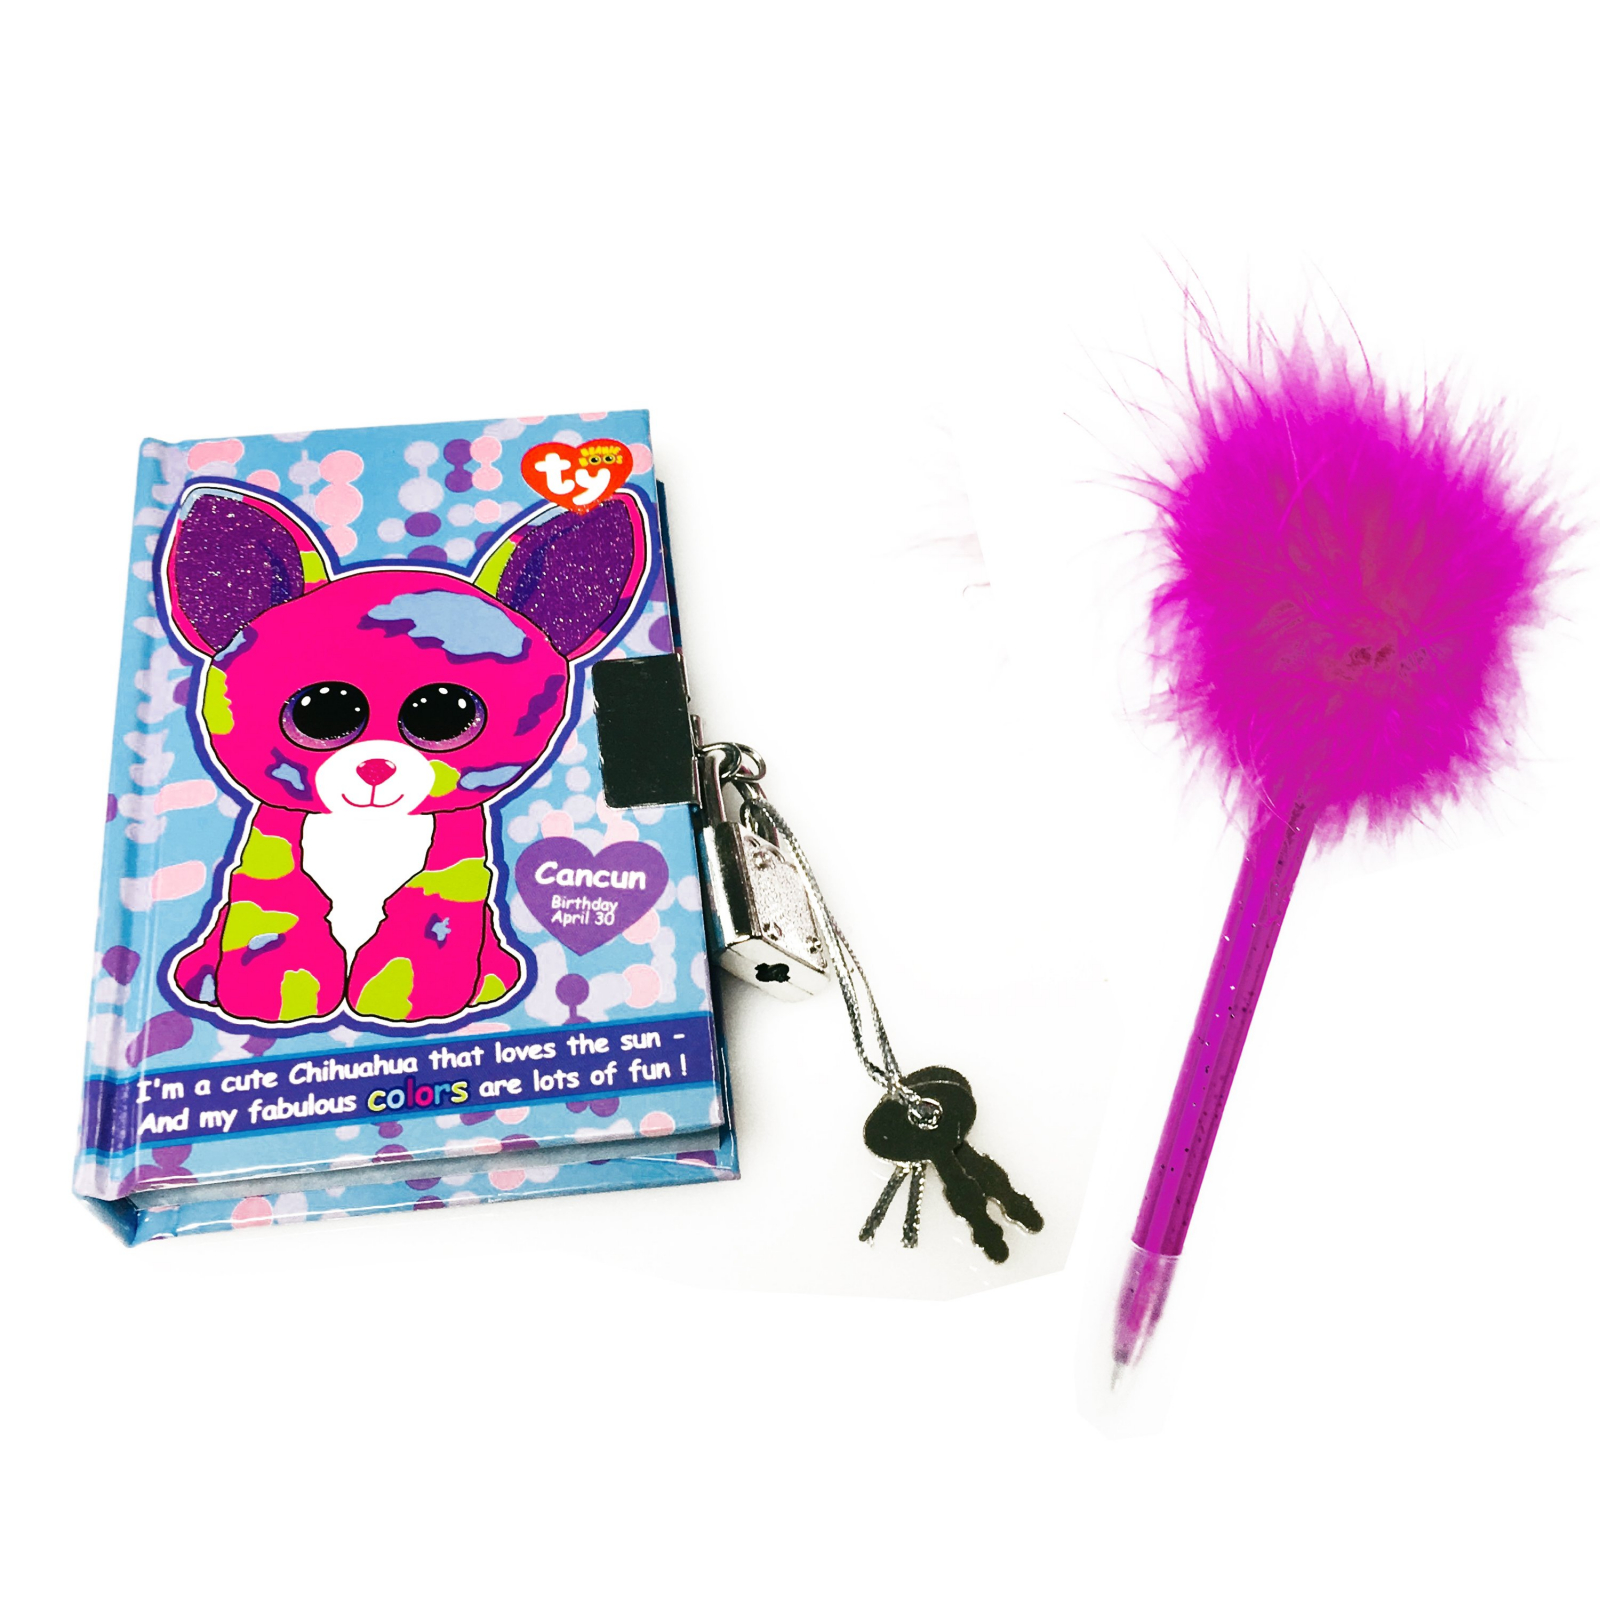 TY Beanie Boos Pocket Mini Diary with Fluffy Pen Cancun Chihuahua